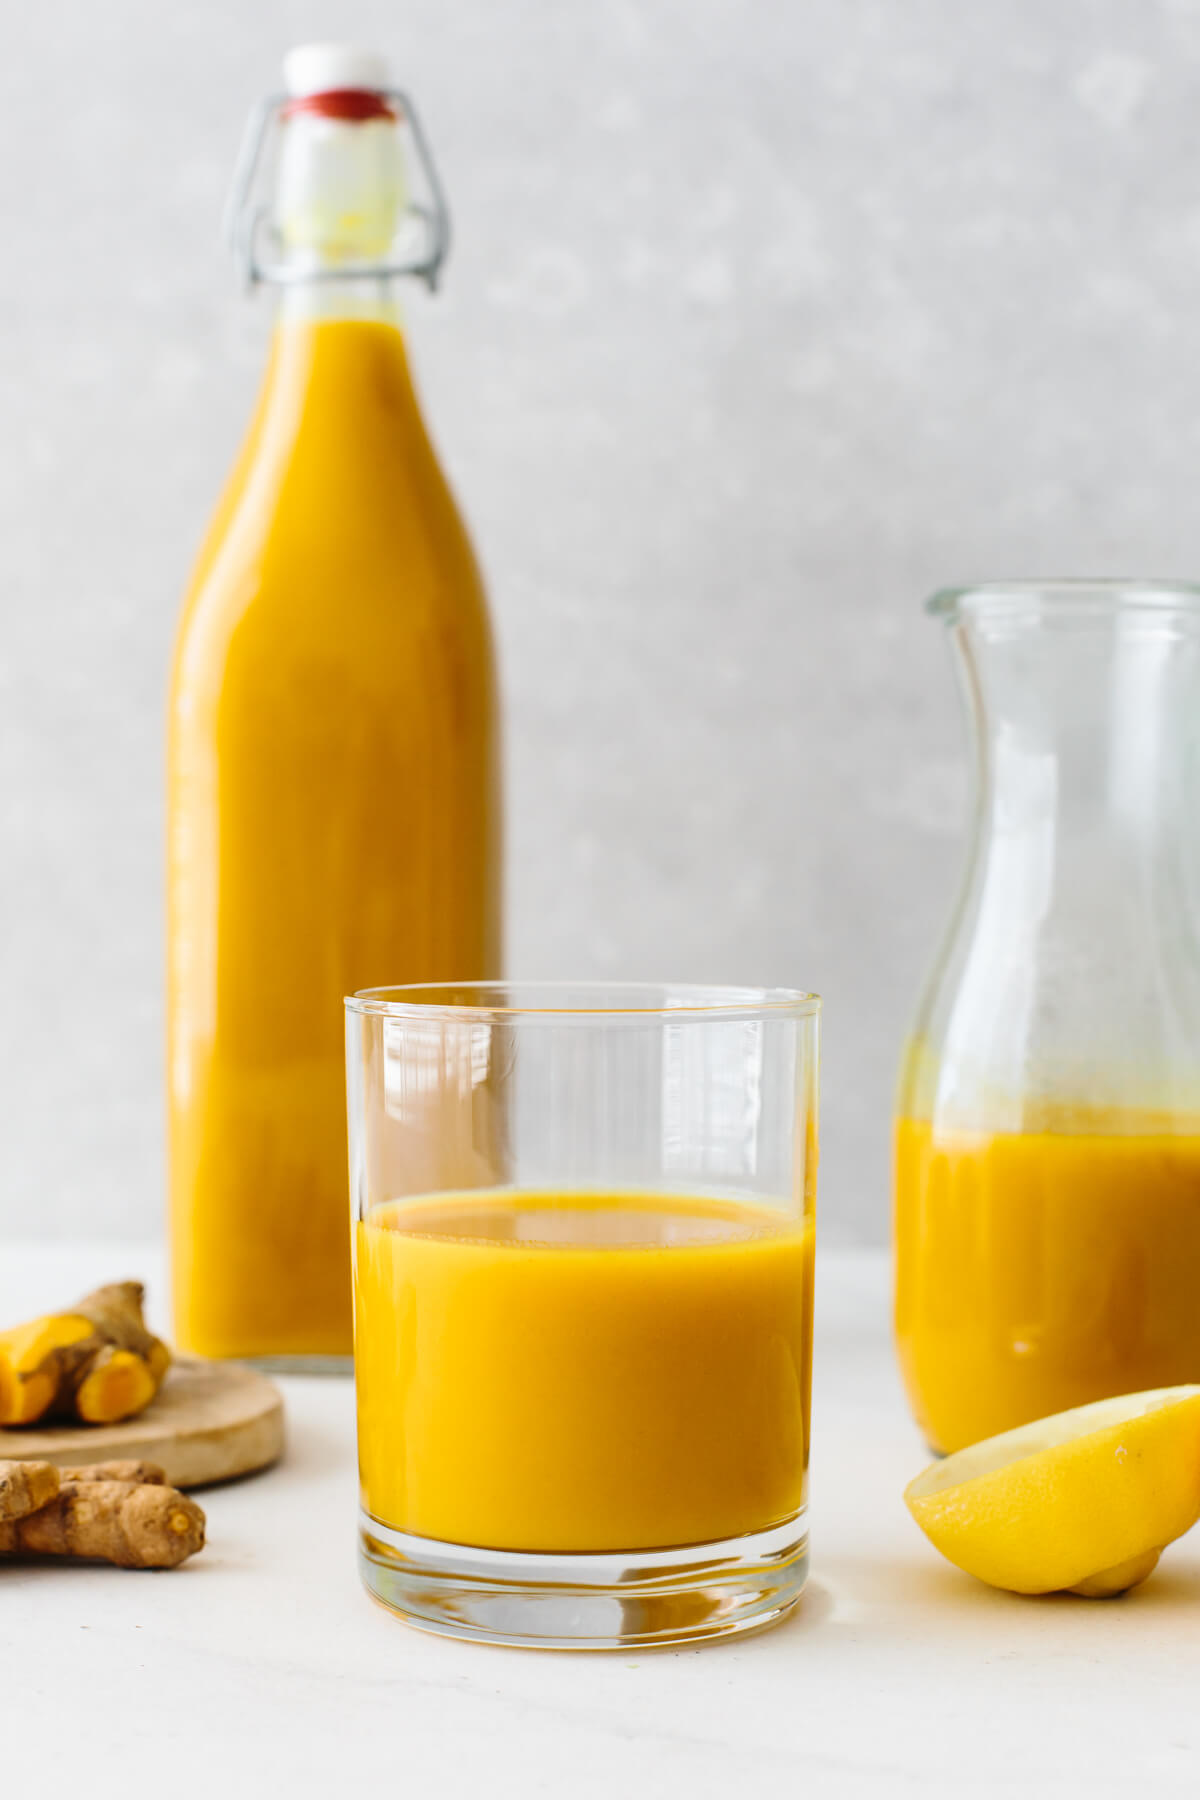 Jamu juice poured into a glass.